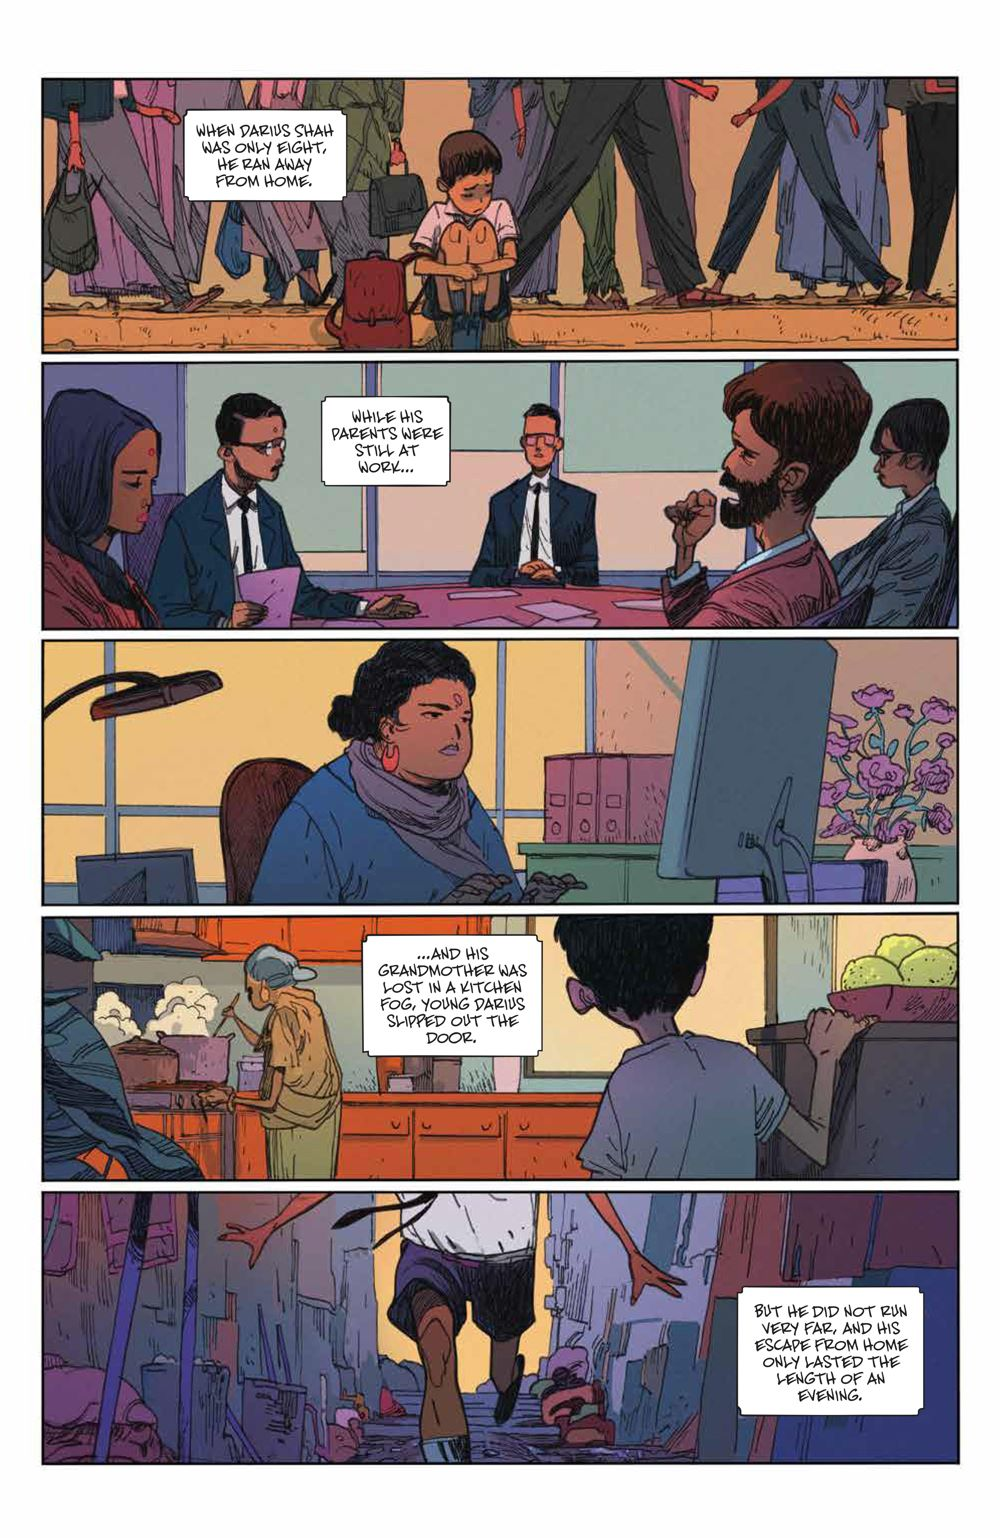 ManyDeathsLailaStarr_002_PRESS_7 ComicList Previews: THE MANY DEATHS OF LAILA STARR #2 (OF 5)